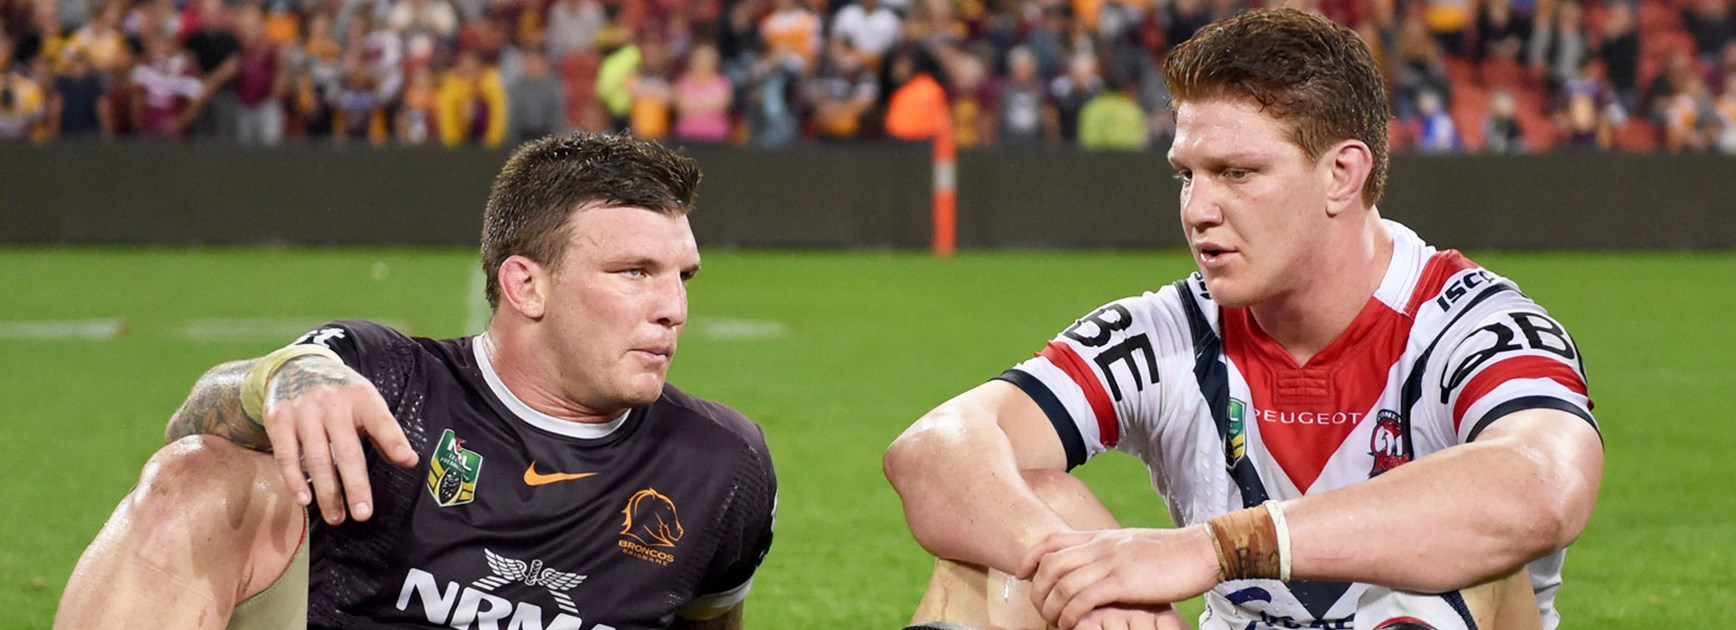 McGuire and Napa's 'friendly' rivalry